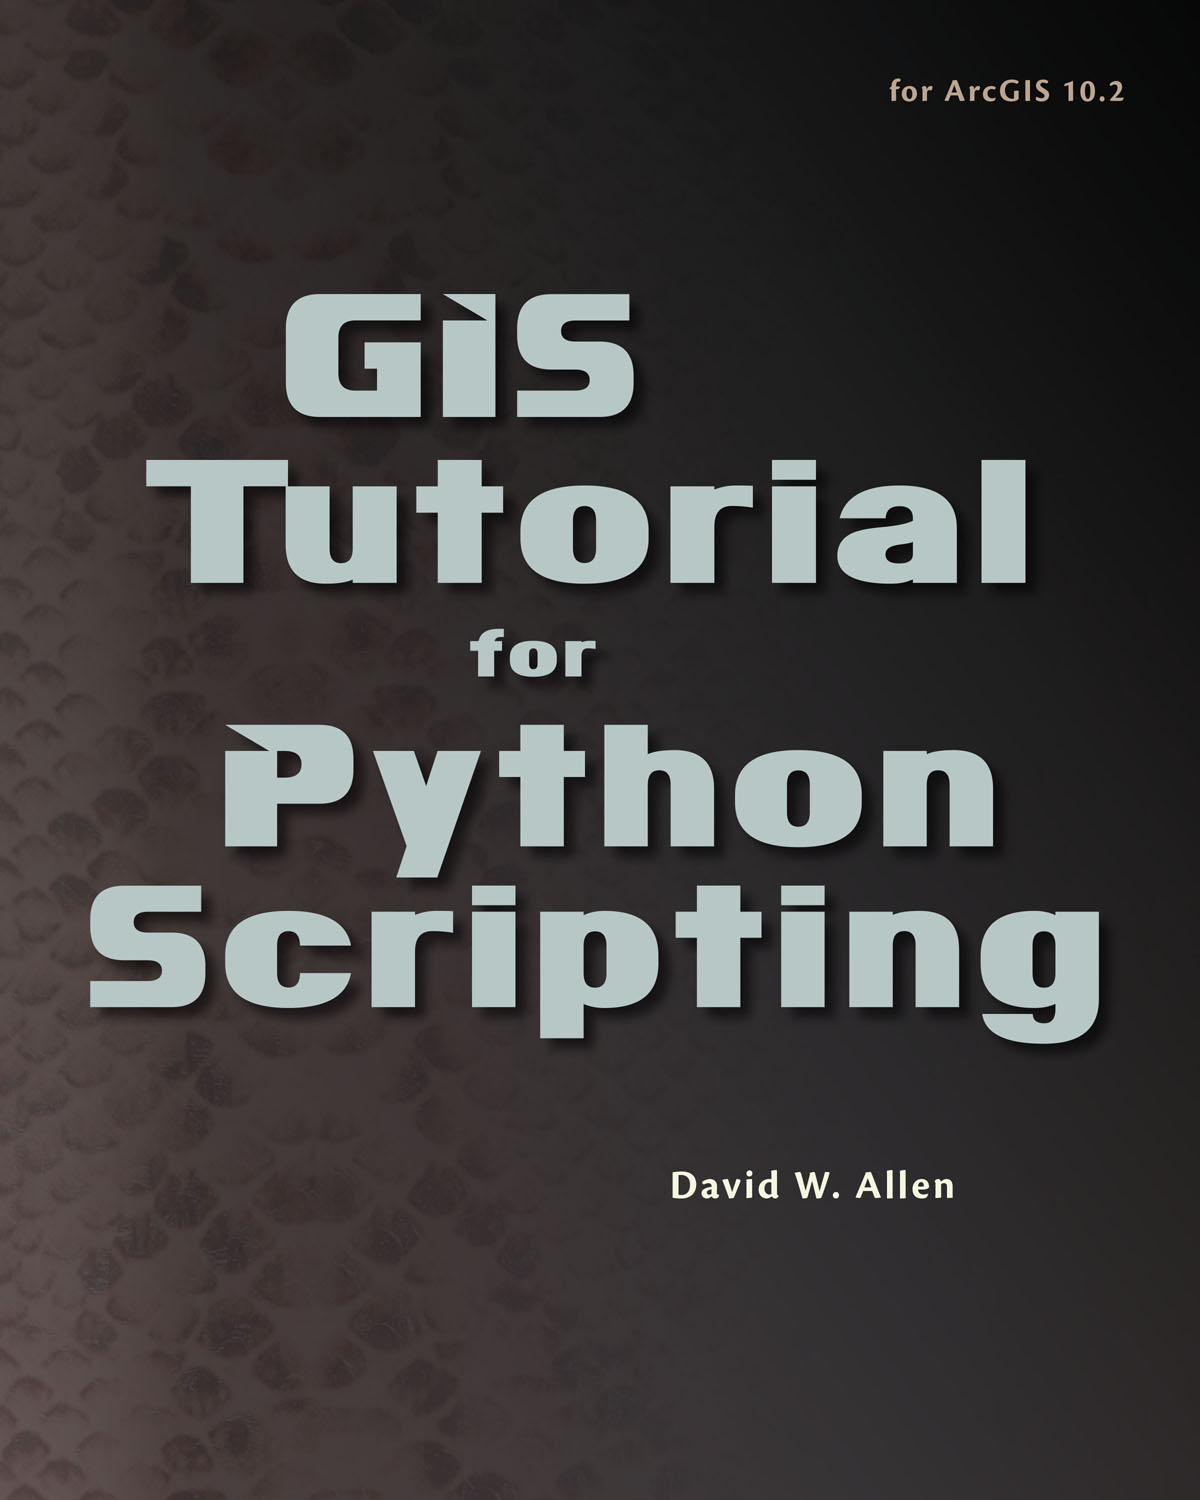 This workbook uses exercises and assignments to help students develop proficiency using Python in the ArcGIS environment.